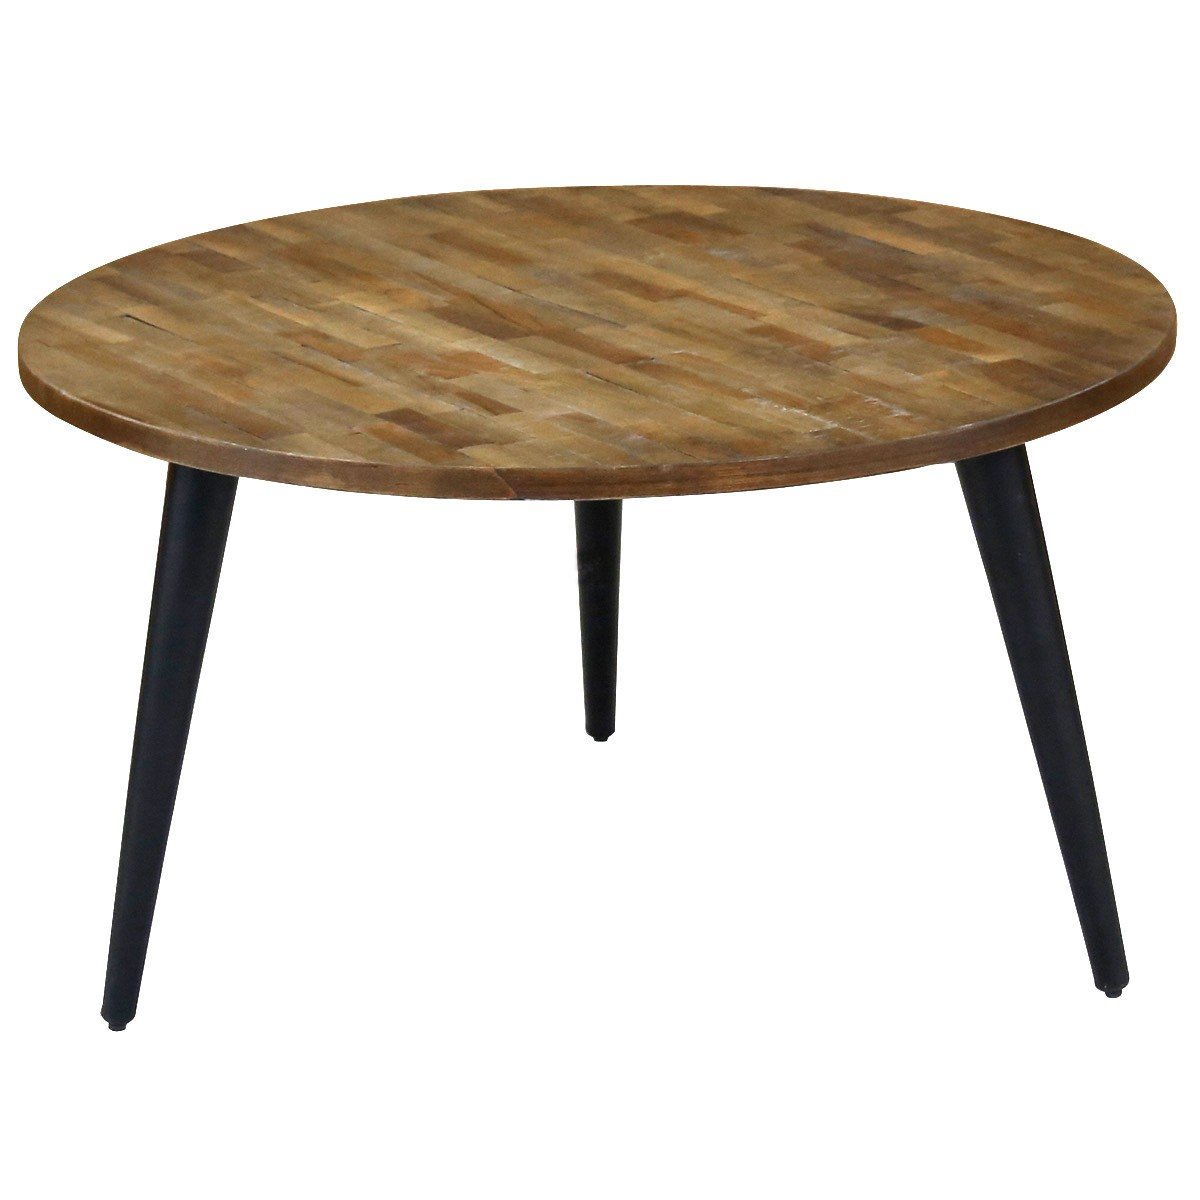 table basse ronde teck pi tement m tal 80 cm style industriel woody zago store. Black Bedroom Furniture Sets. Home Design Ideas